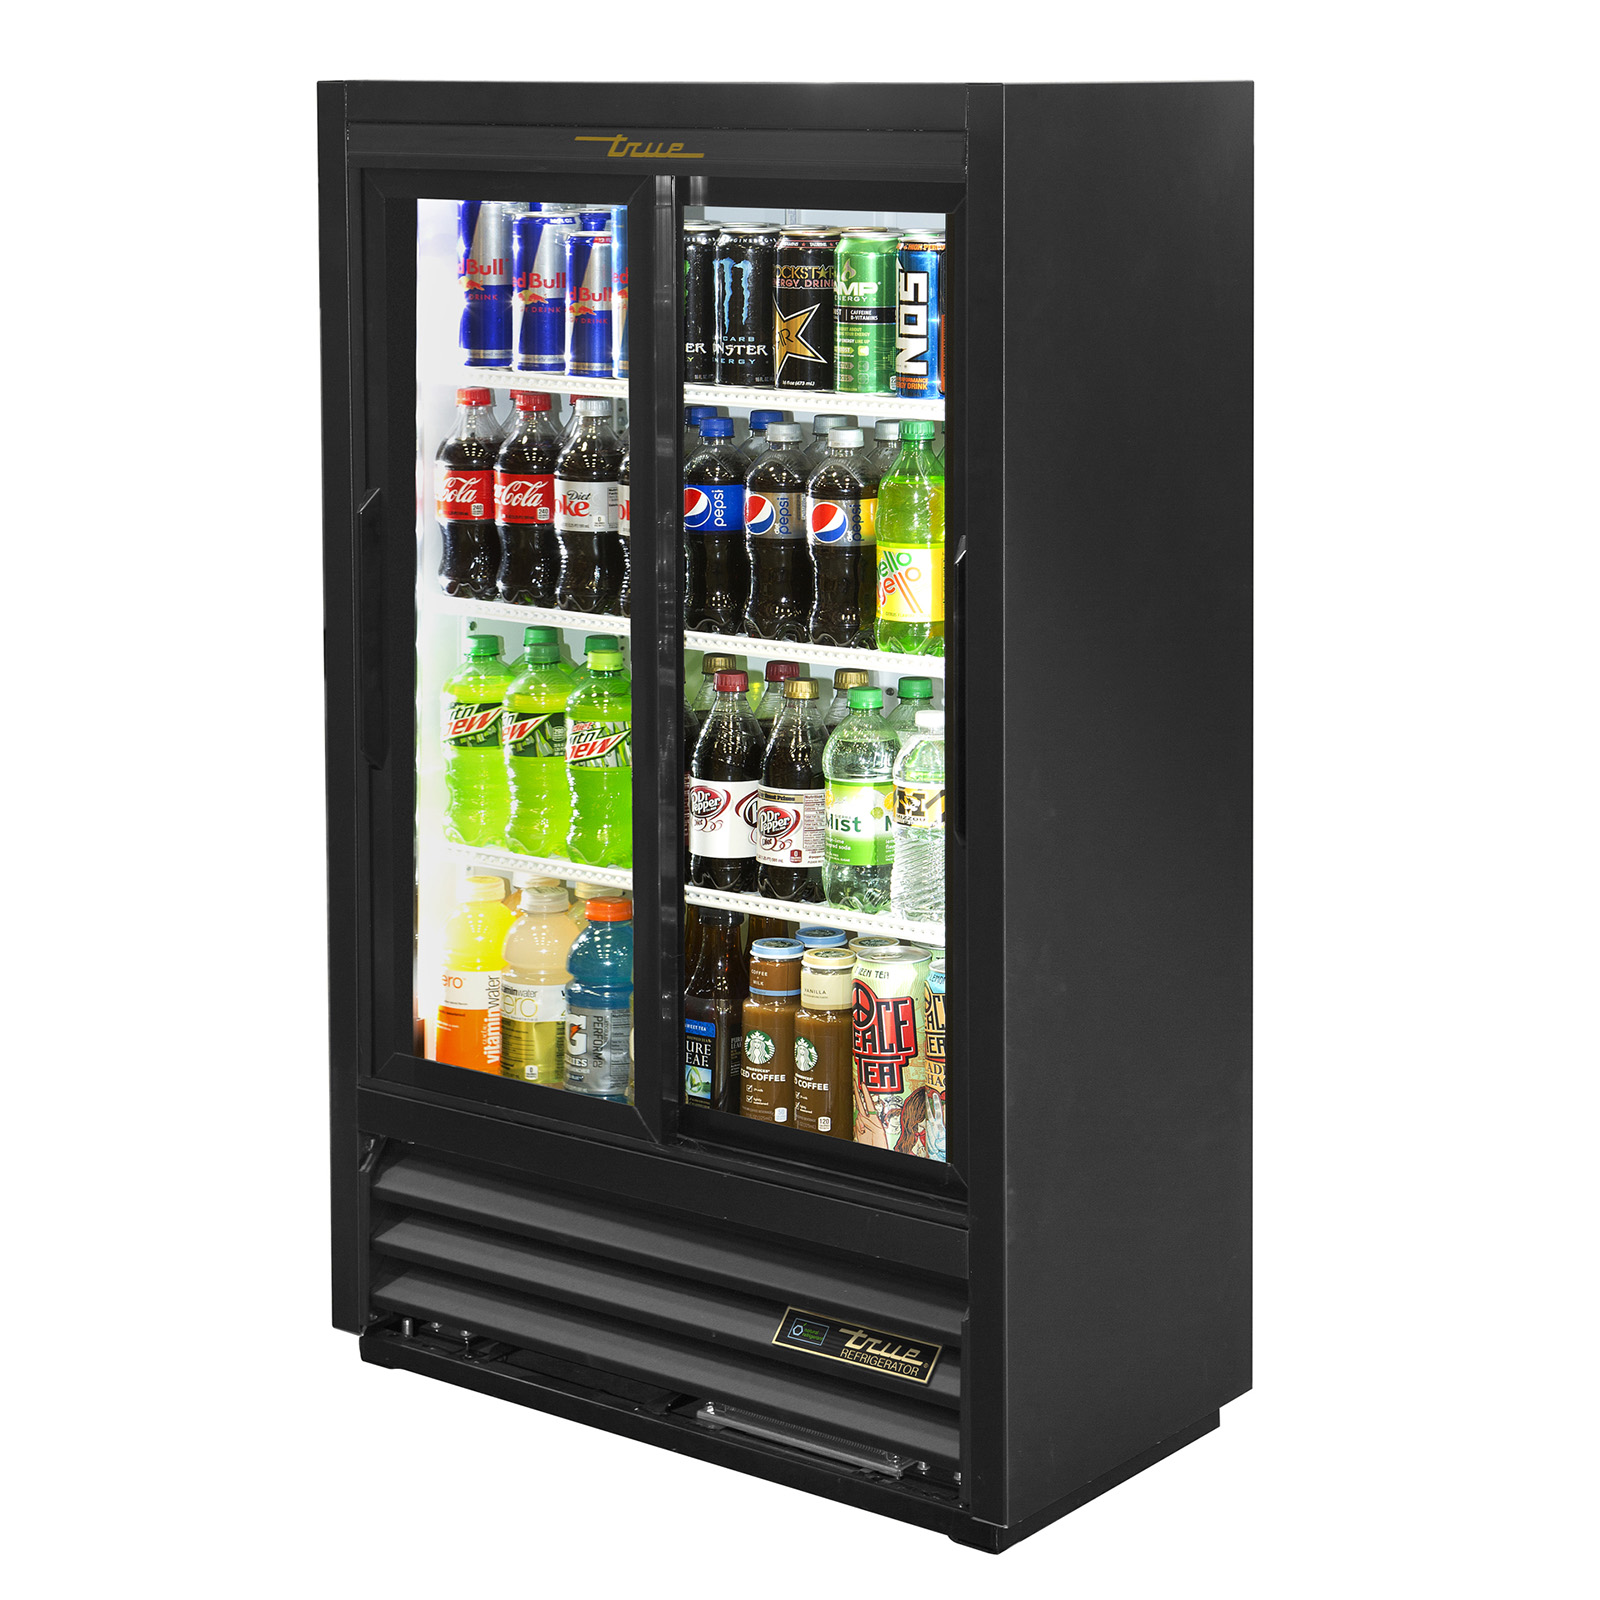 GDM-33SSL-56-HC-LD True - Convenience Store Cooler two-section